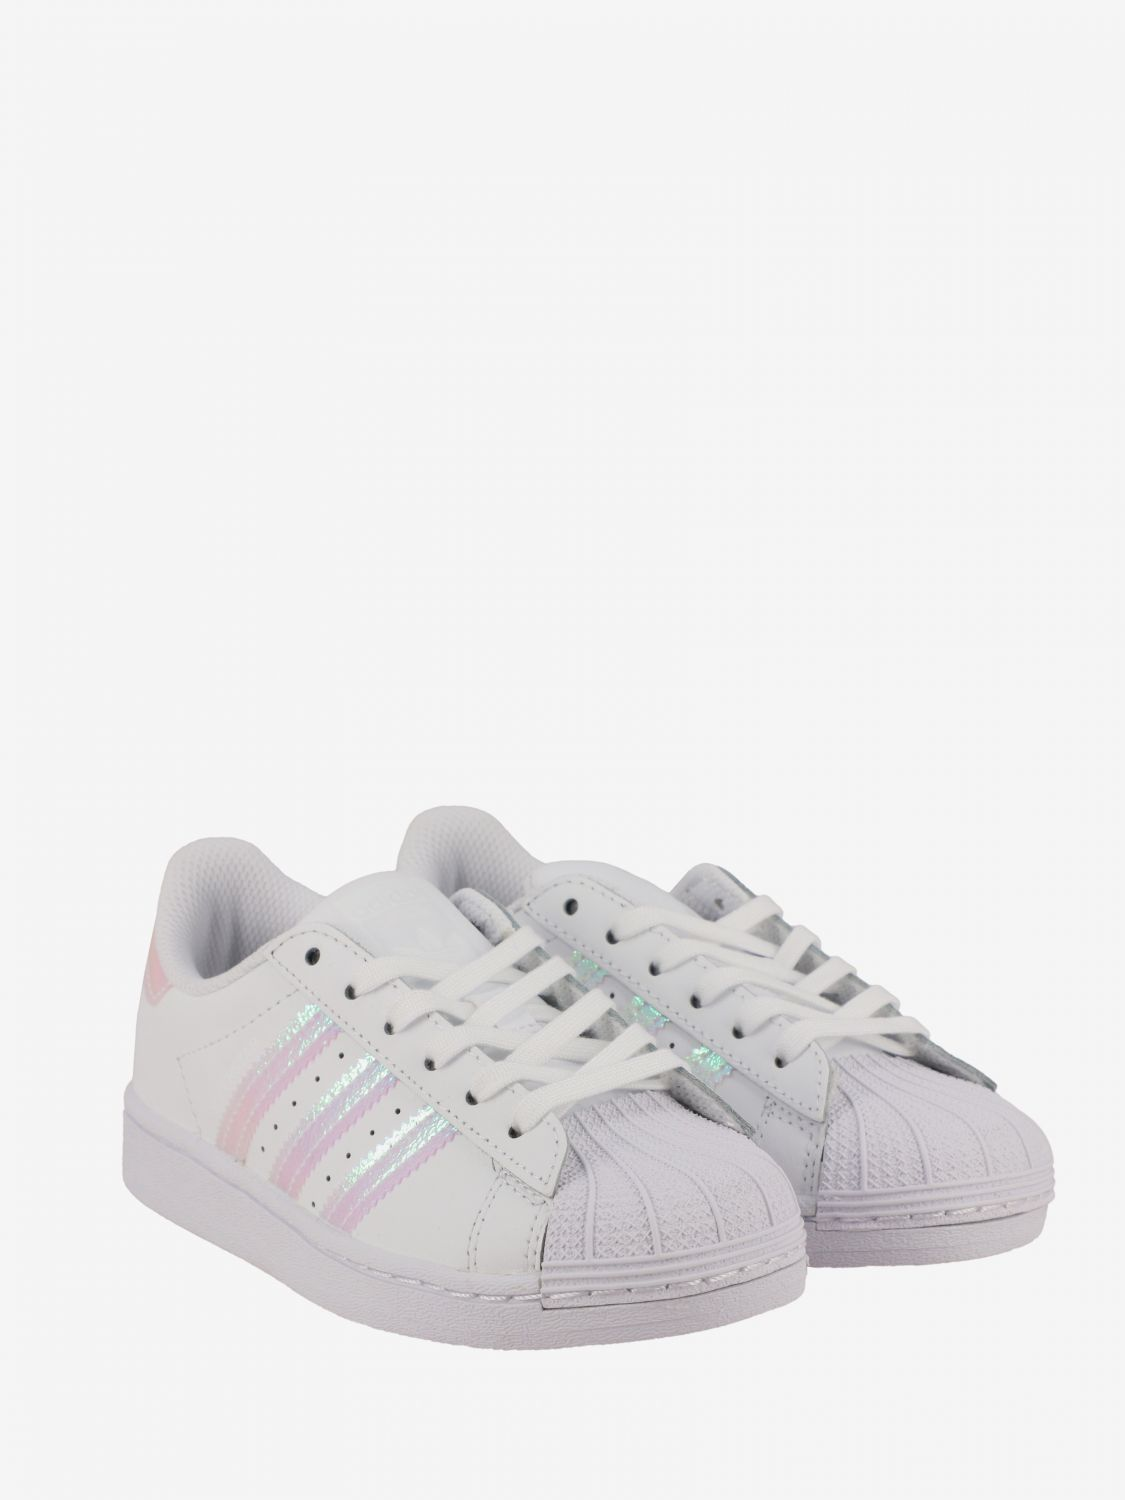 Shoes Adidas Originals: Superstar Adidas Originals sneakers in leather with logo white 2